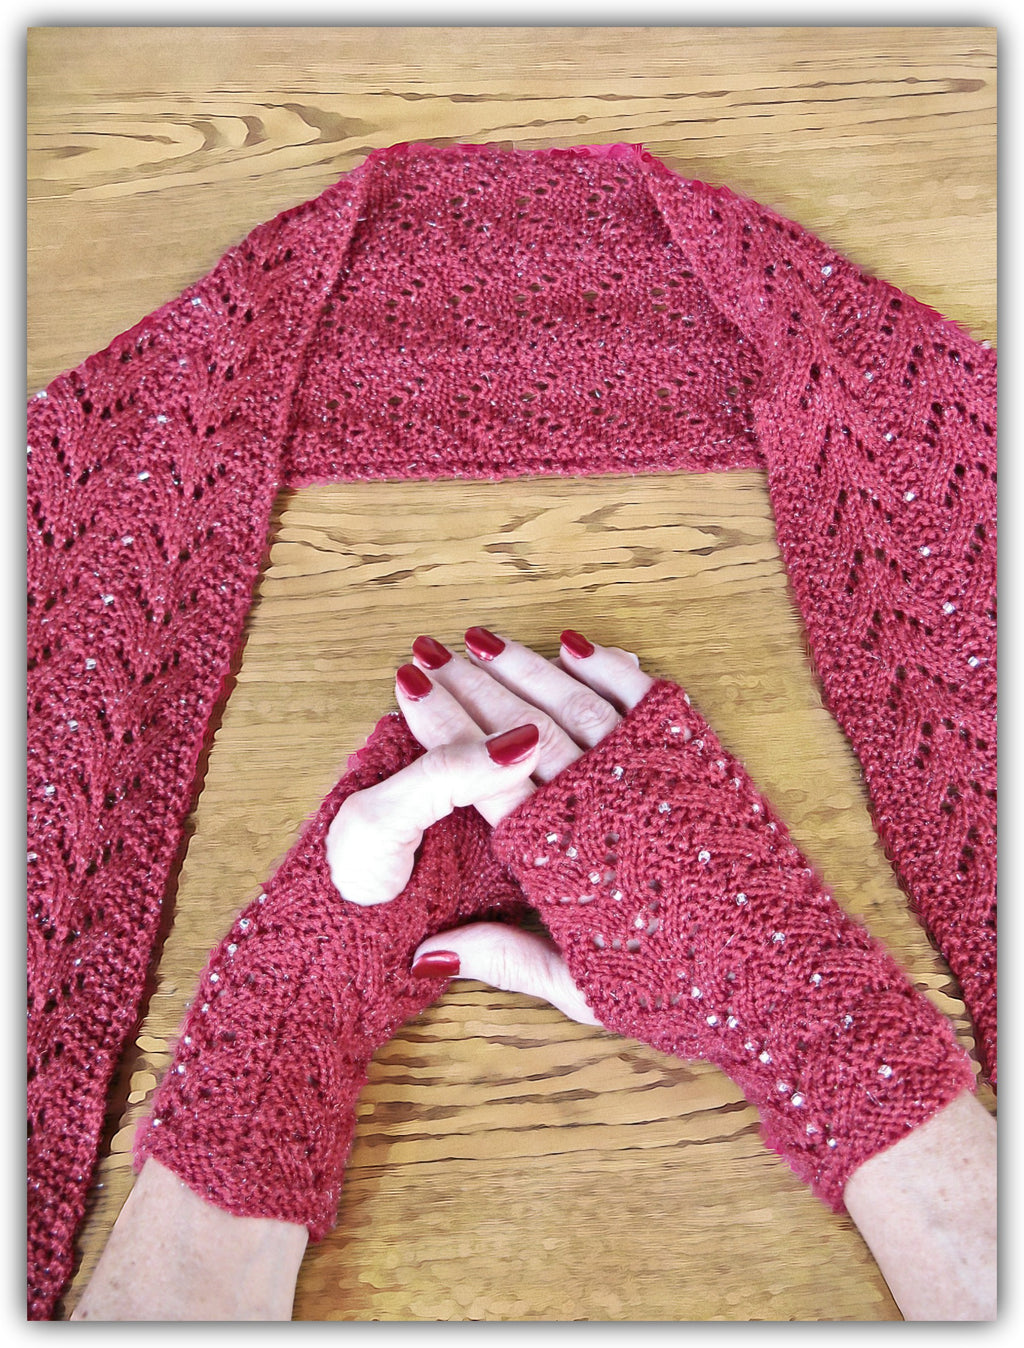 Beaded Lace Scarf & Fingerless Gloves  - Designed by Eleanor Swogger